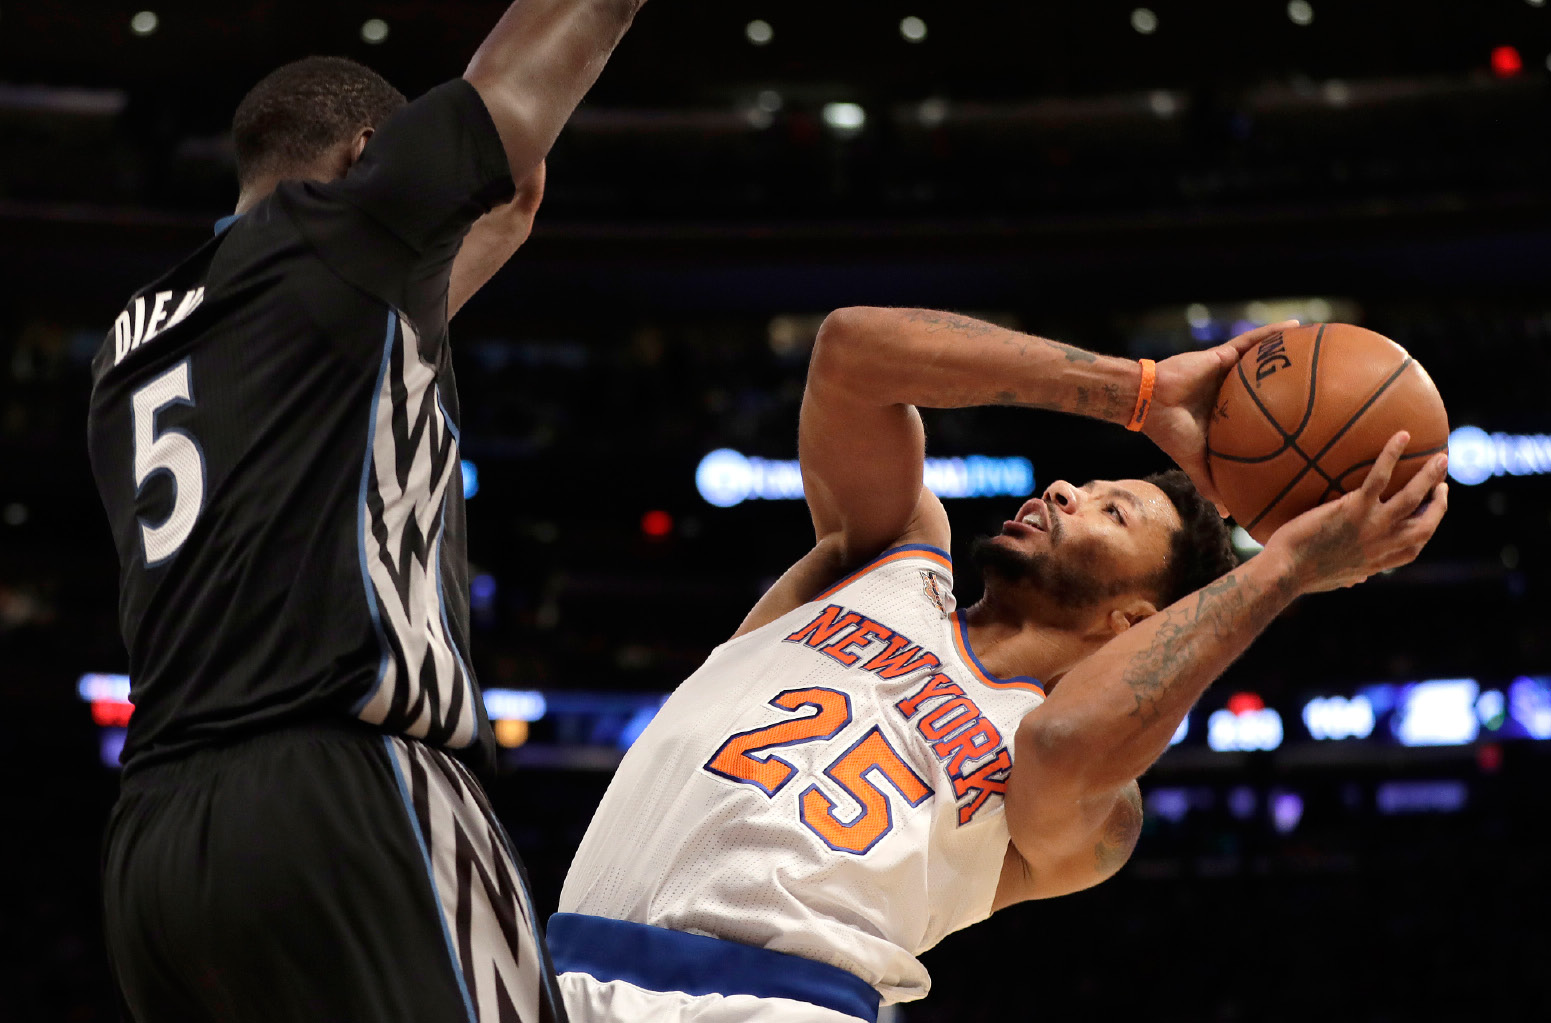 New York Knicks guard Derrick Rose (25) is fouled by Minnesota Timberwolves forward Gorgui Dieng (5) during the second half of an NBA basketball game at Madison Square Garden in New York, Friday, Dec. 2, 2016. (AP Photo/Julio Cortez)